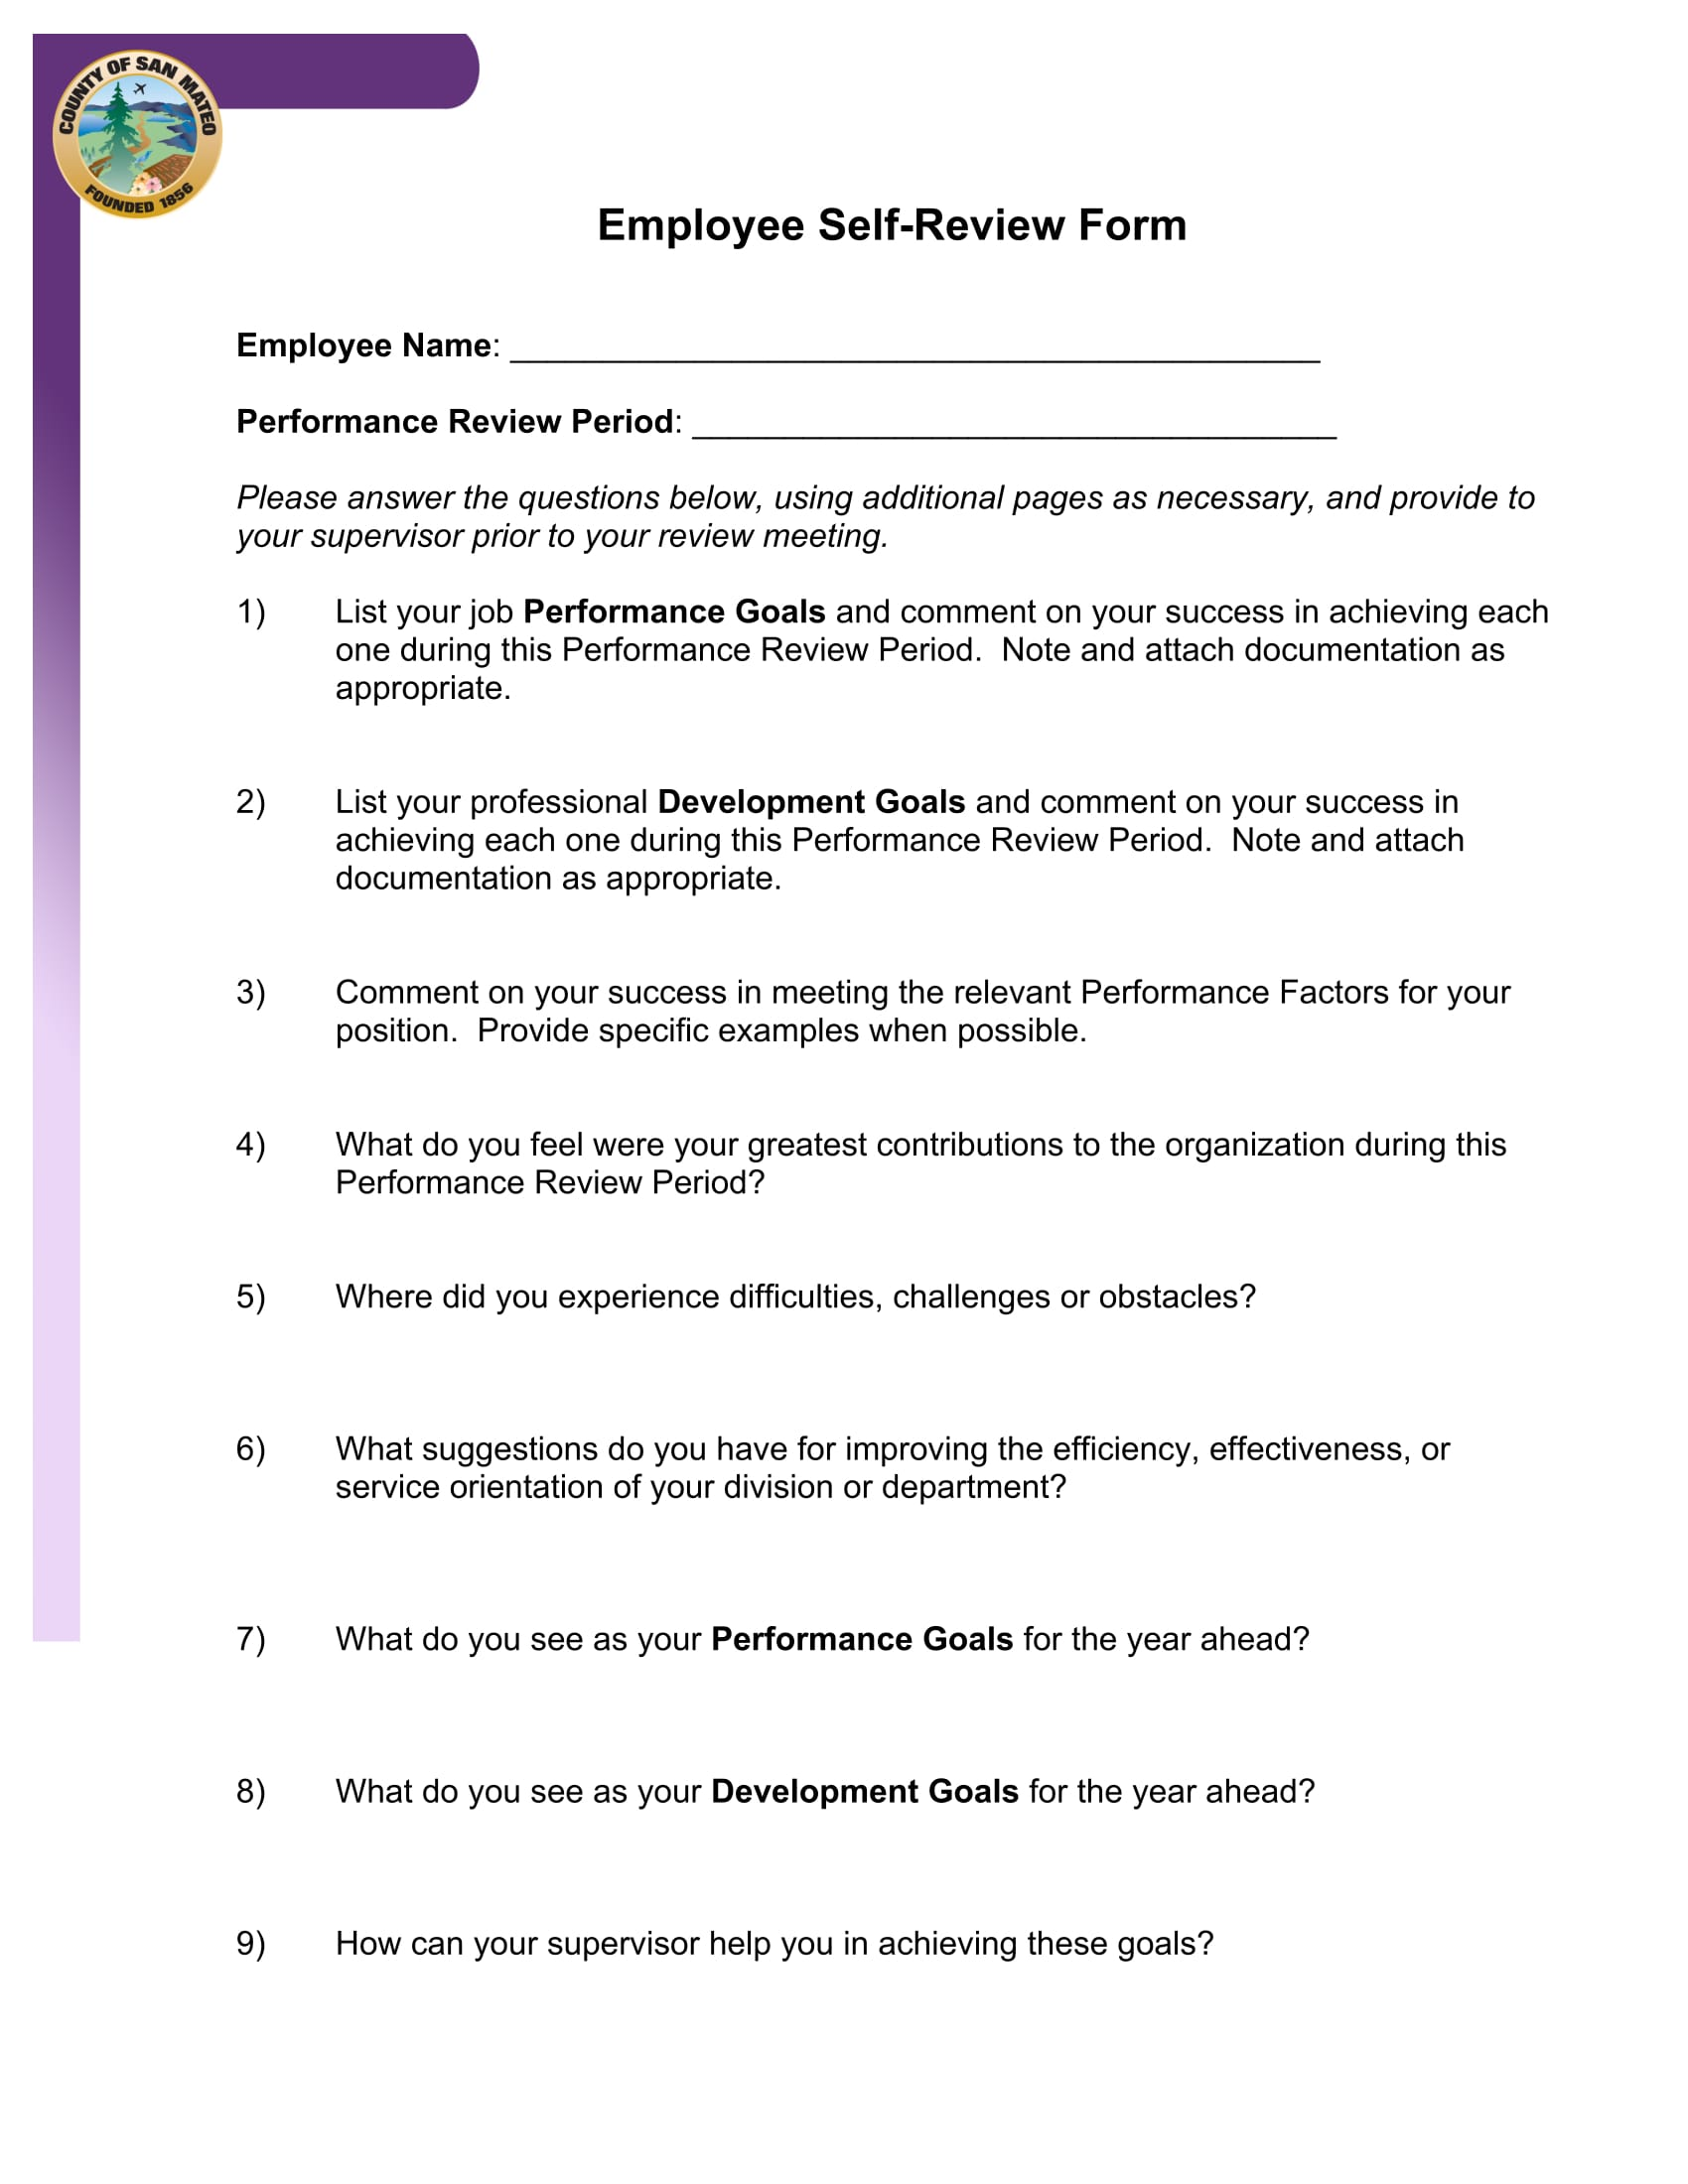 employee self review form 11